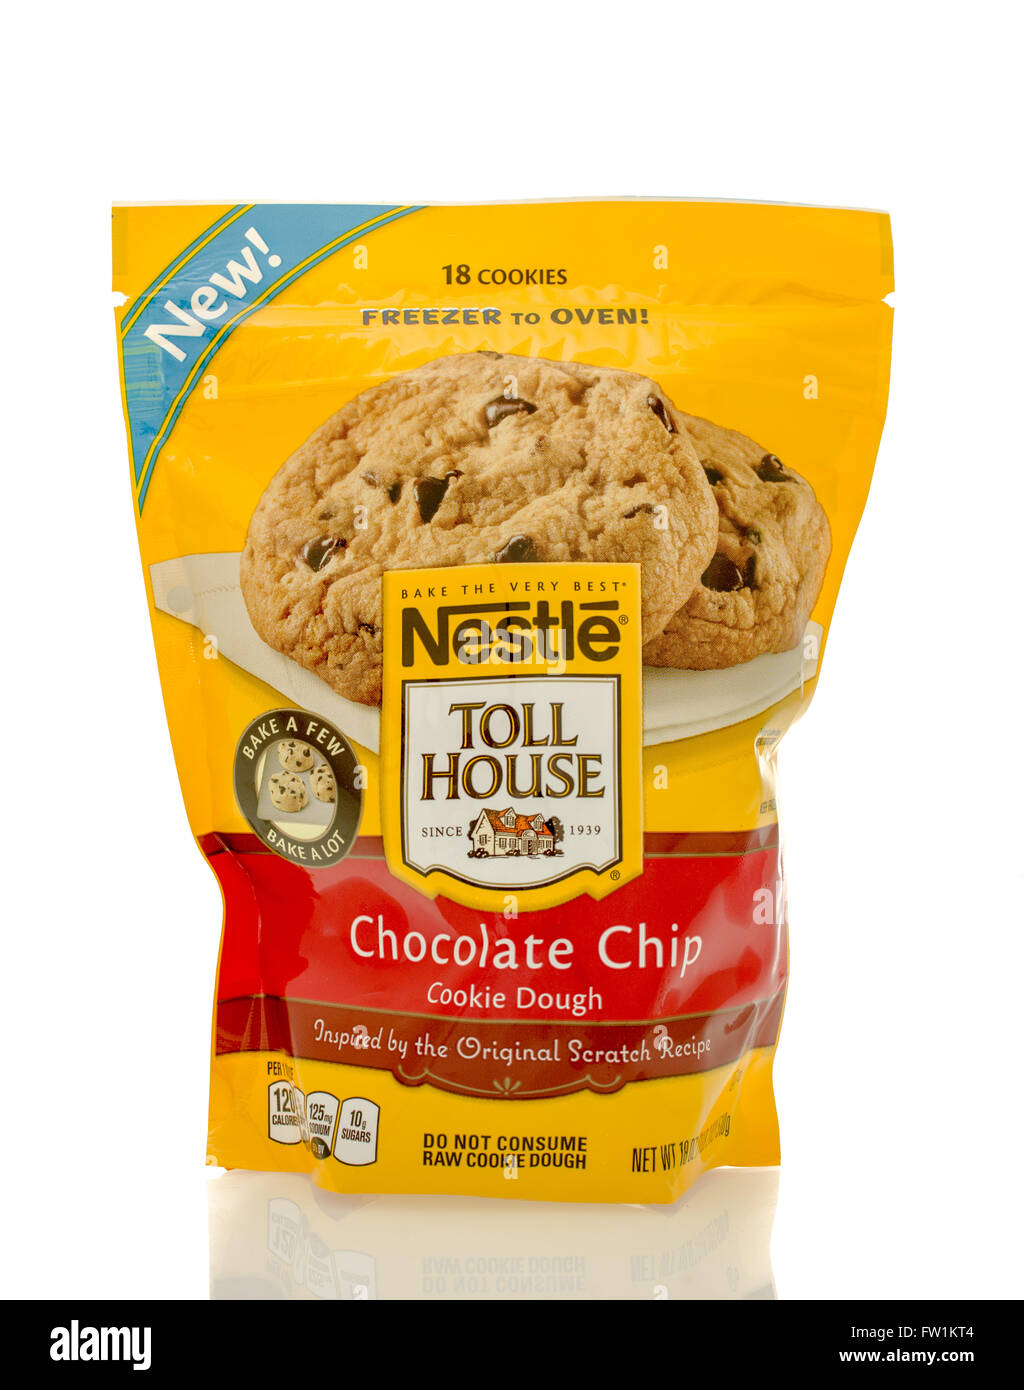 Winneconne, WI - 30 March 2016: Bag of Nestle Toll House chocolate ...